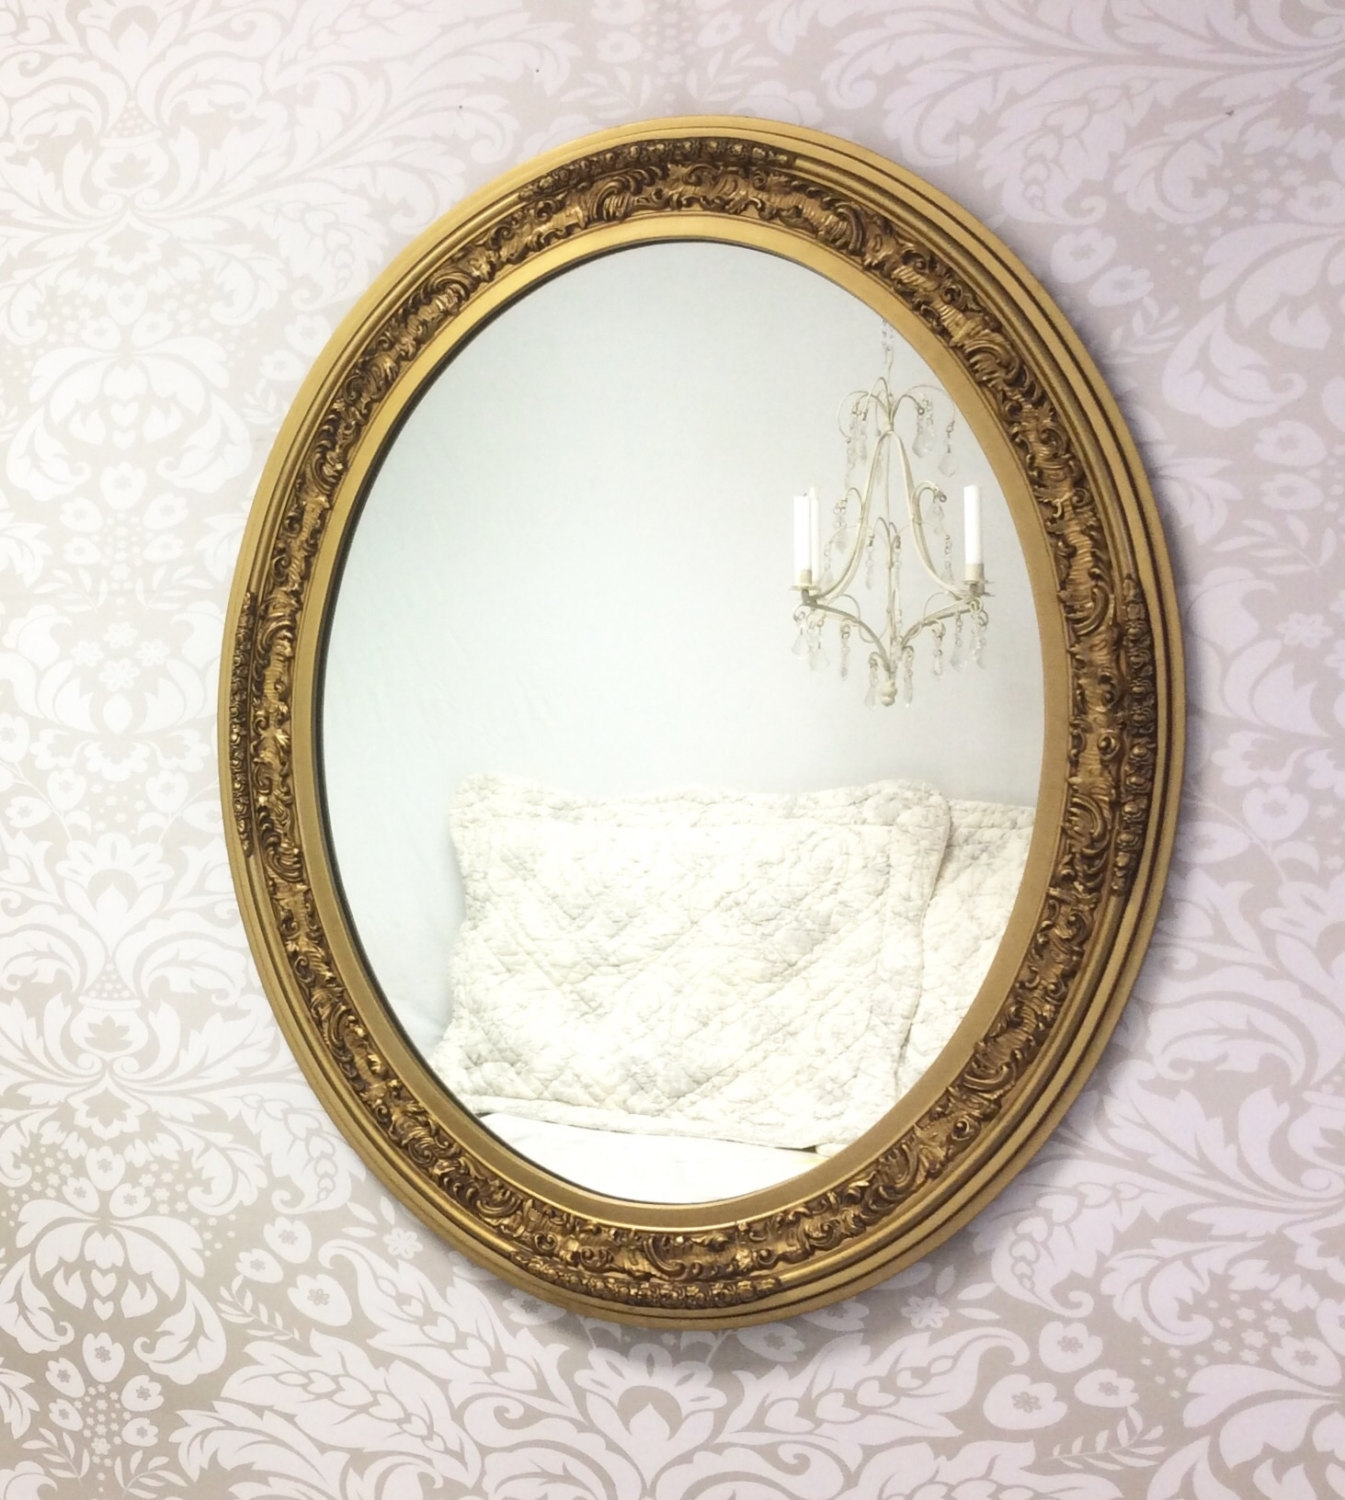 Ornate Gold Mirror Etsy In Large Oval Mirrors (Image 8 of 15)